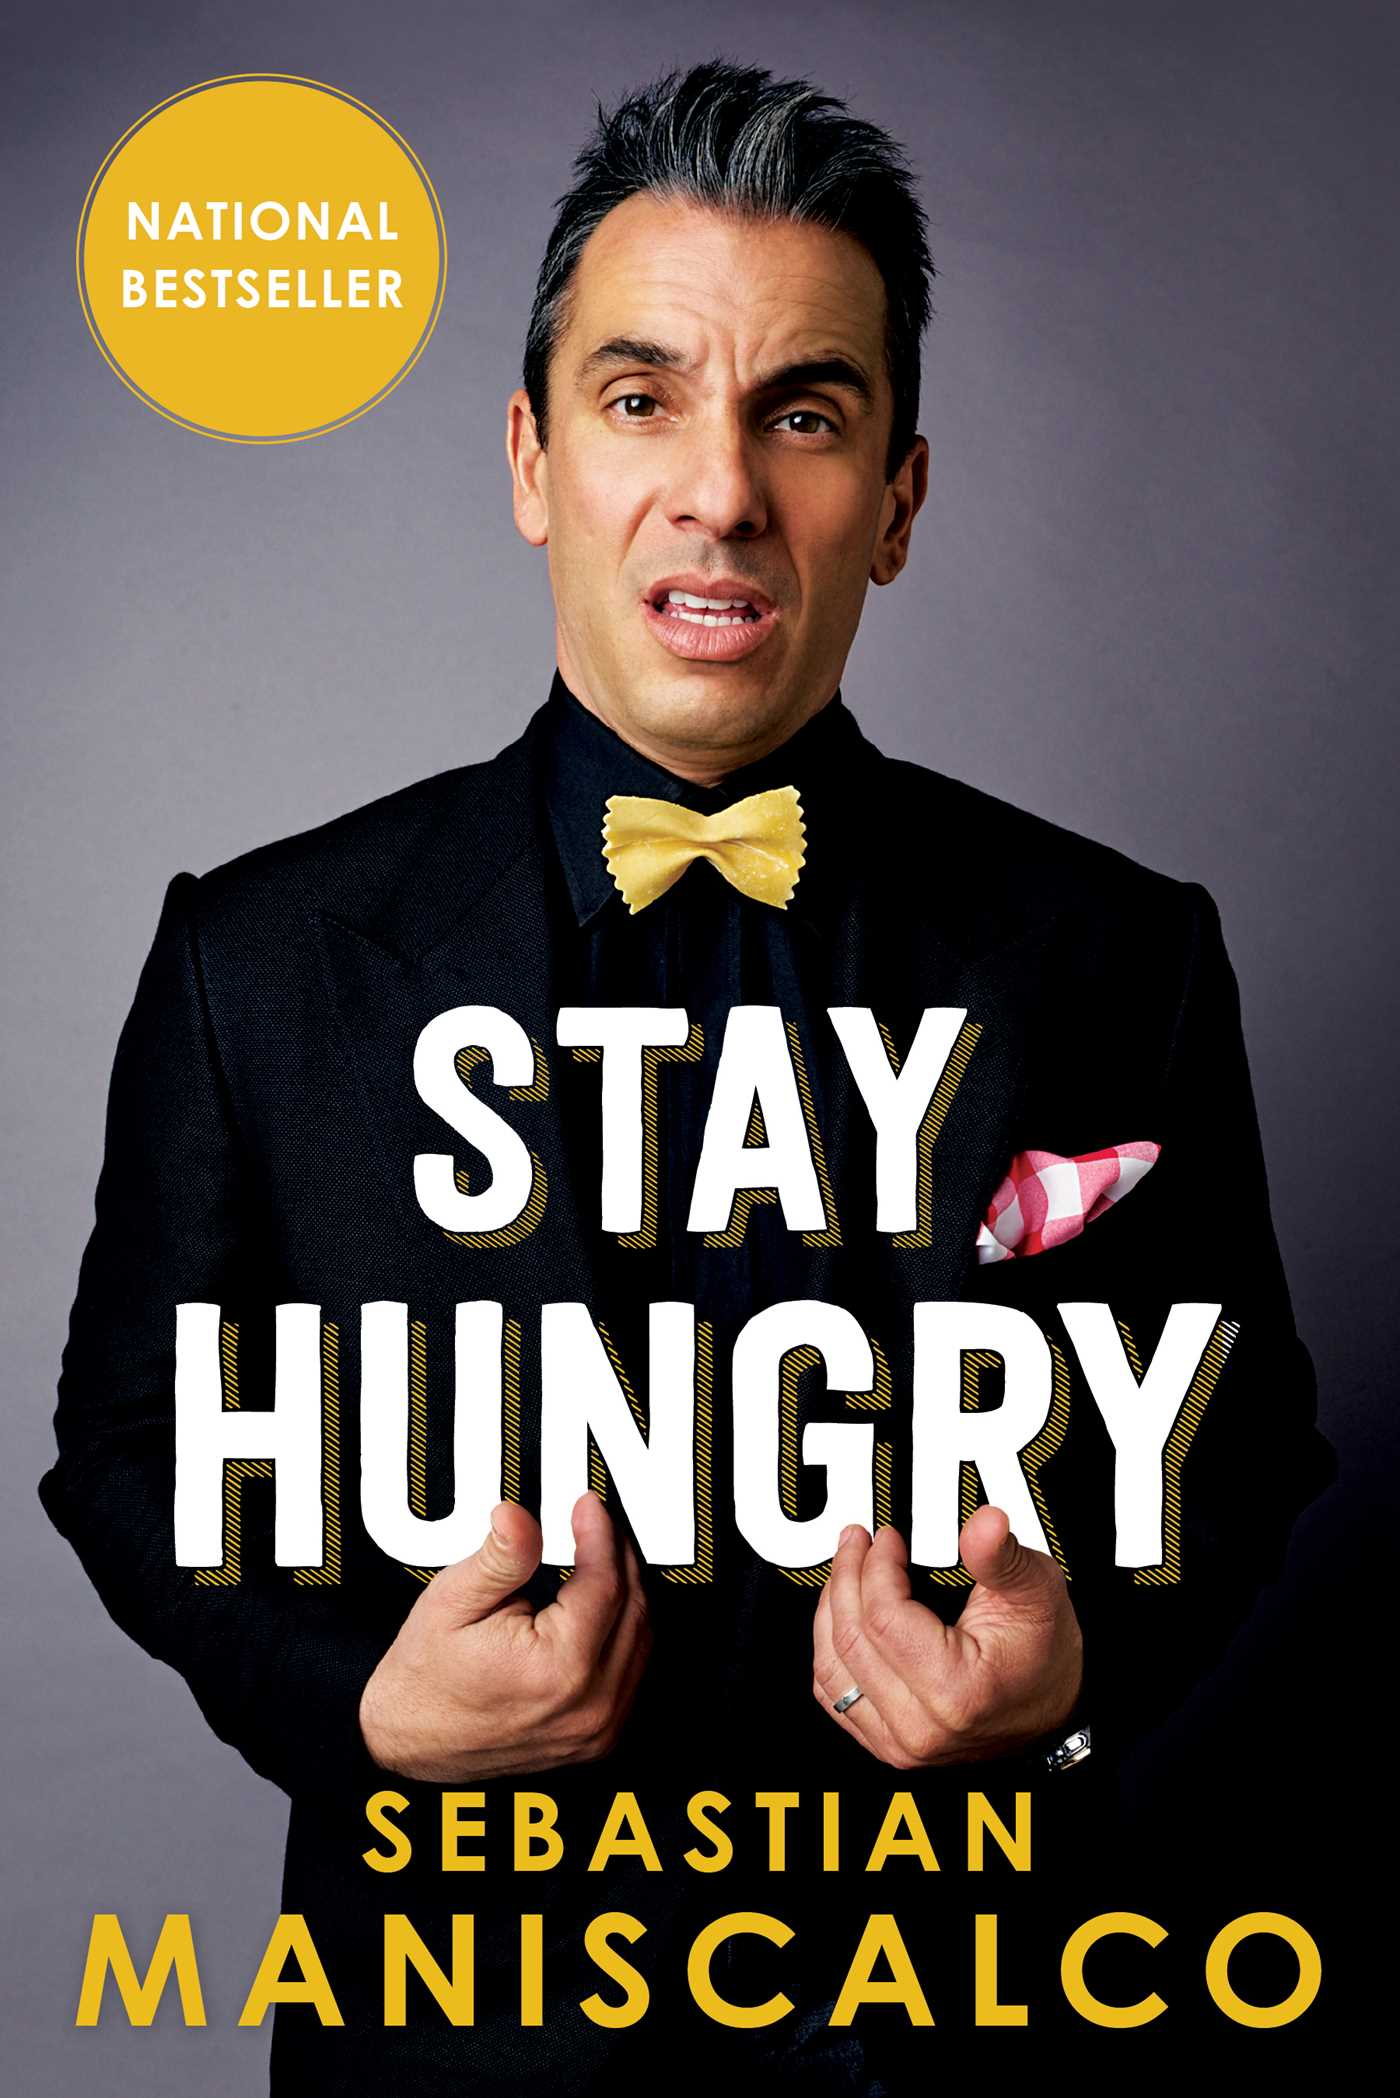 Stay hungry 9781501115998 hr